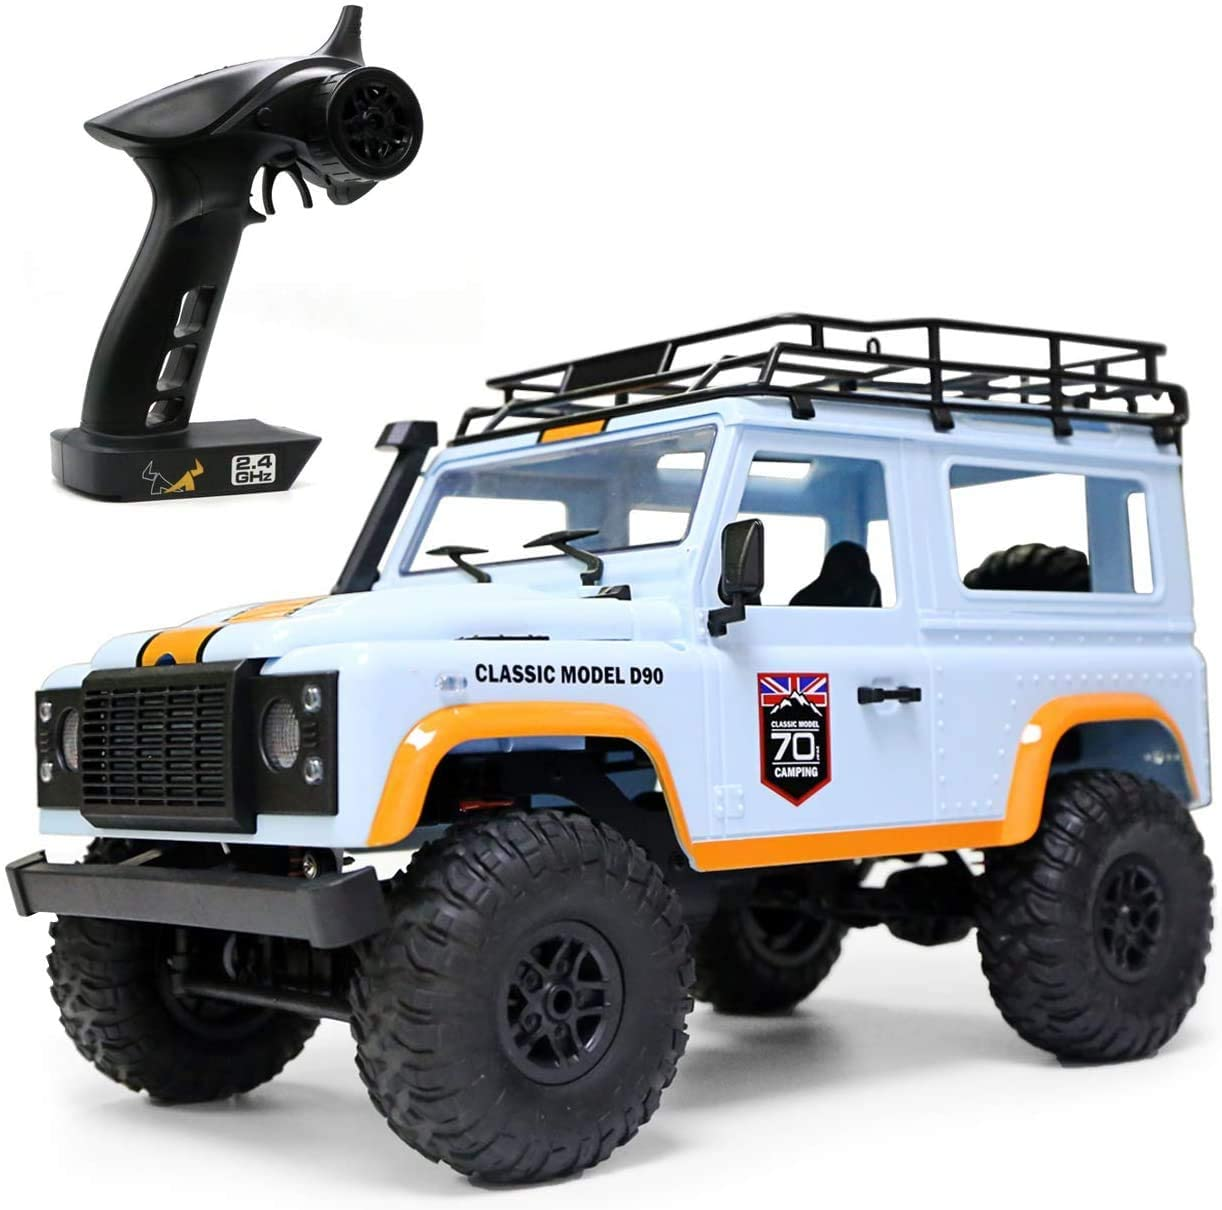 The perseids 1:12 2.4G 4WD RC Car Off-Road High-Speed Vehicle Minitary Truck Climb Rock Crawler Electric Hobby Grade RTR Toy for Kids Over 14 Years Old and Adul ts,Blue